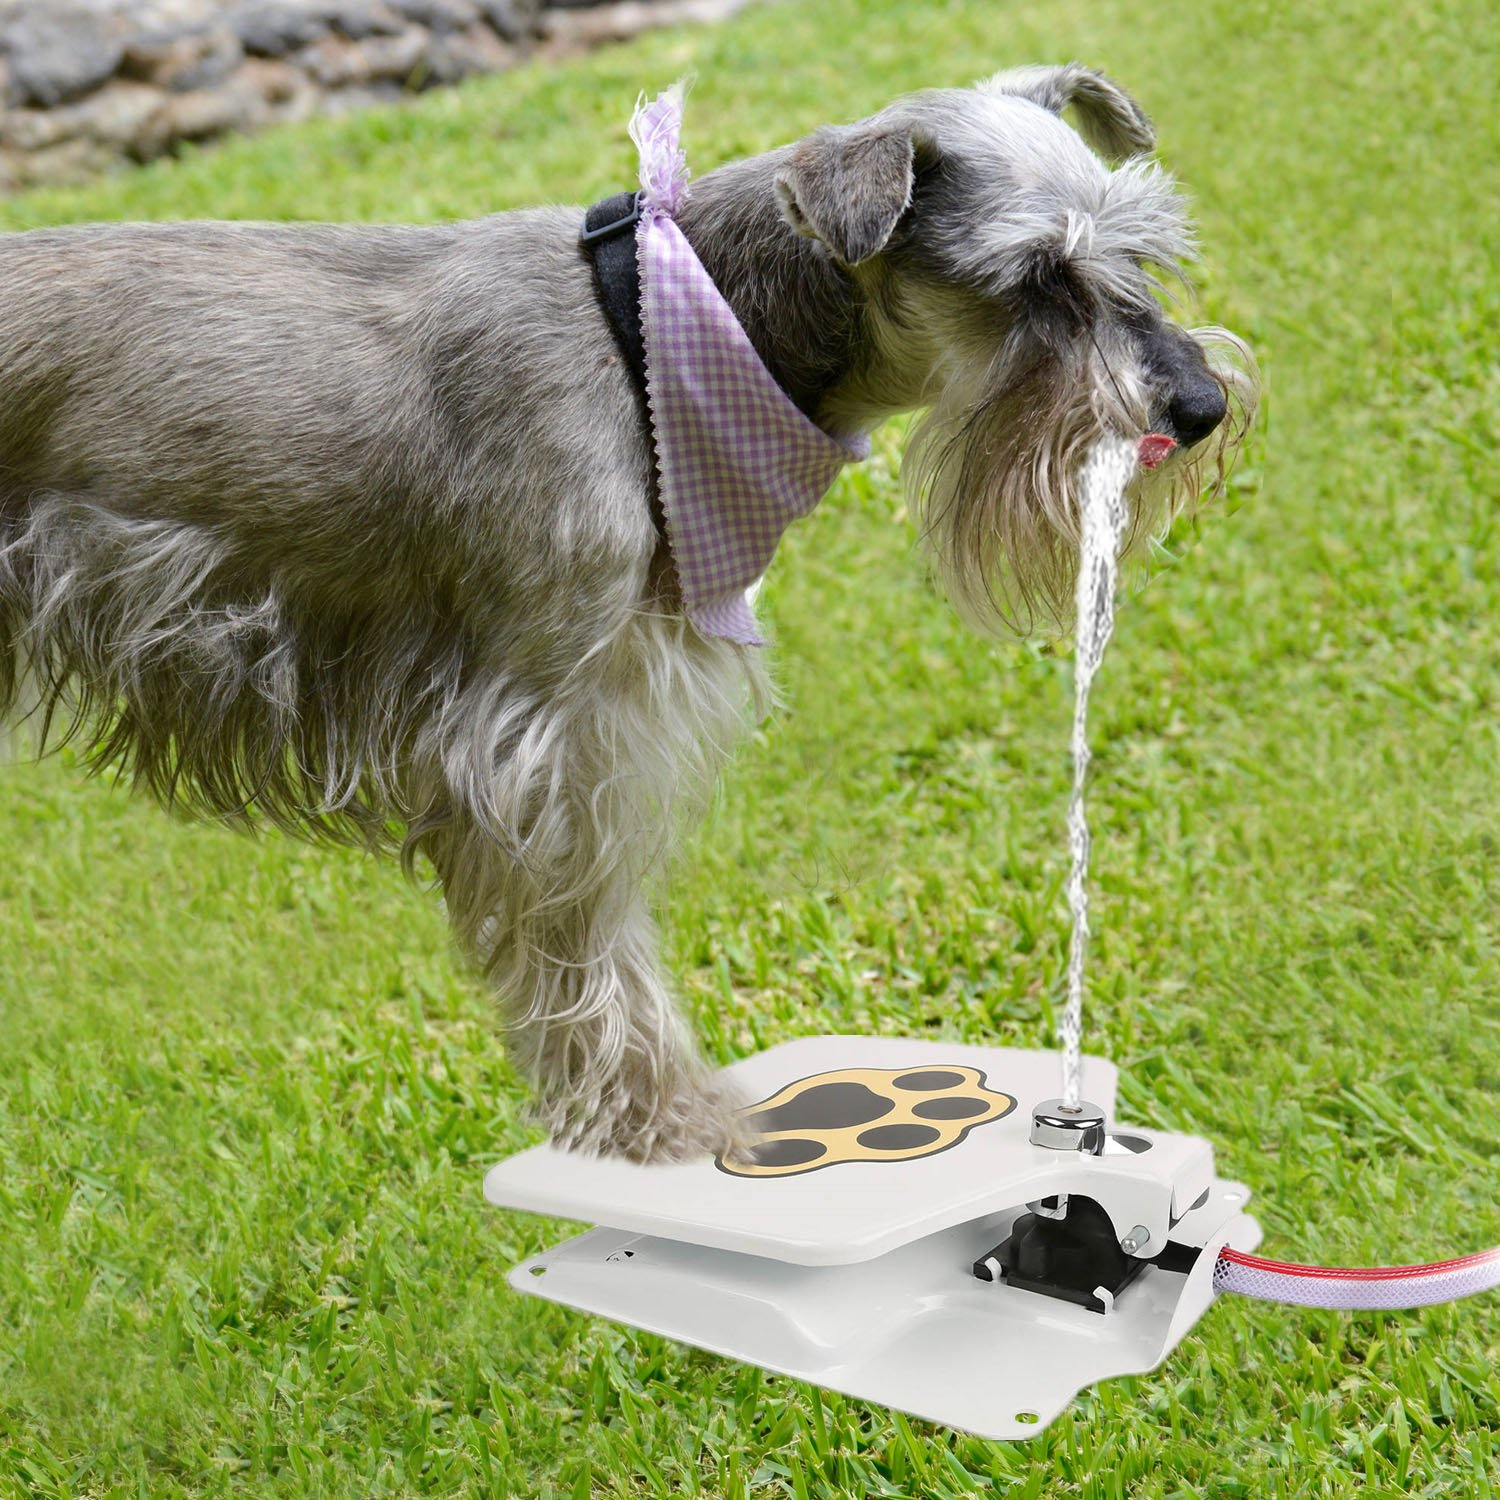 iMounTEK Hygienic Dog/Pet Geyser Water Fountain (41'' Hose, Prevents Your Pet From Drinking Stagnant Water, Paw Design, Durable Steel, Water Safe, Encourages Drinking)